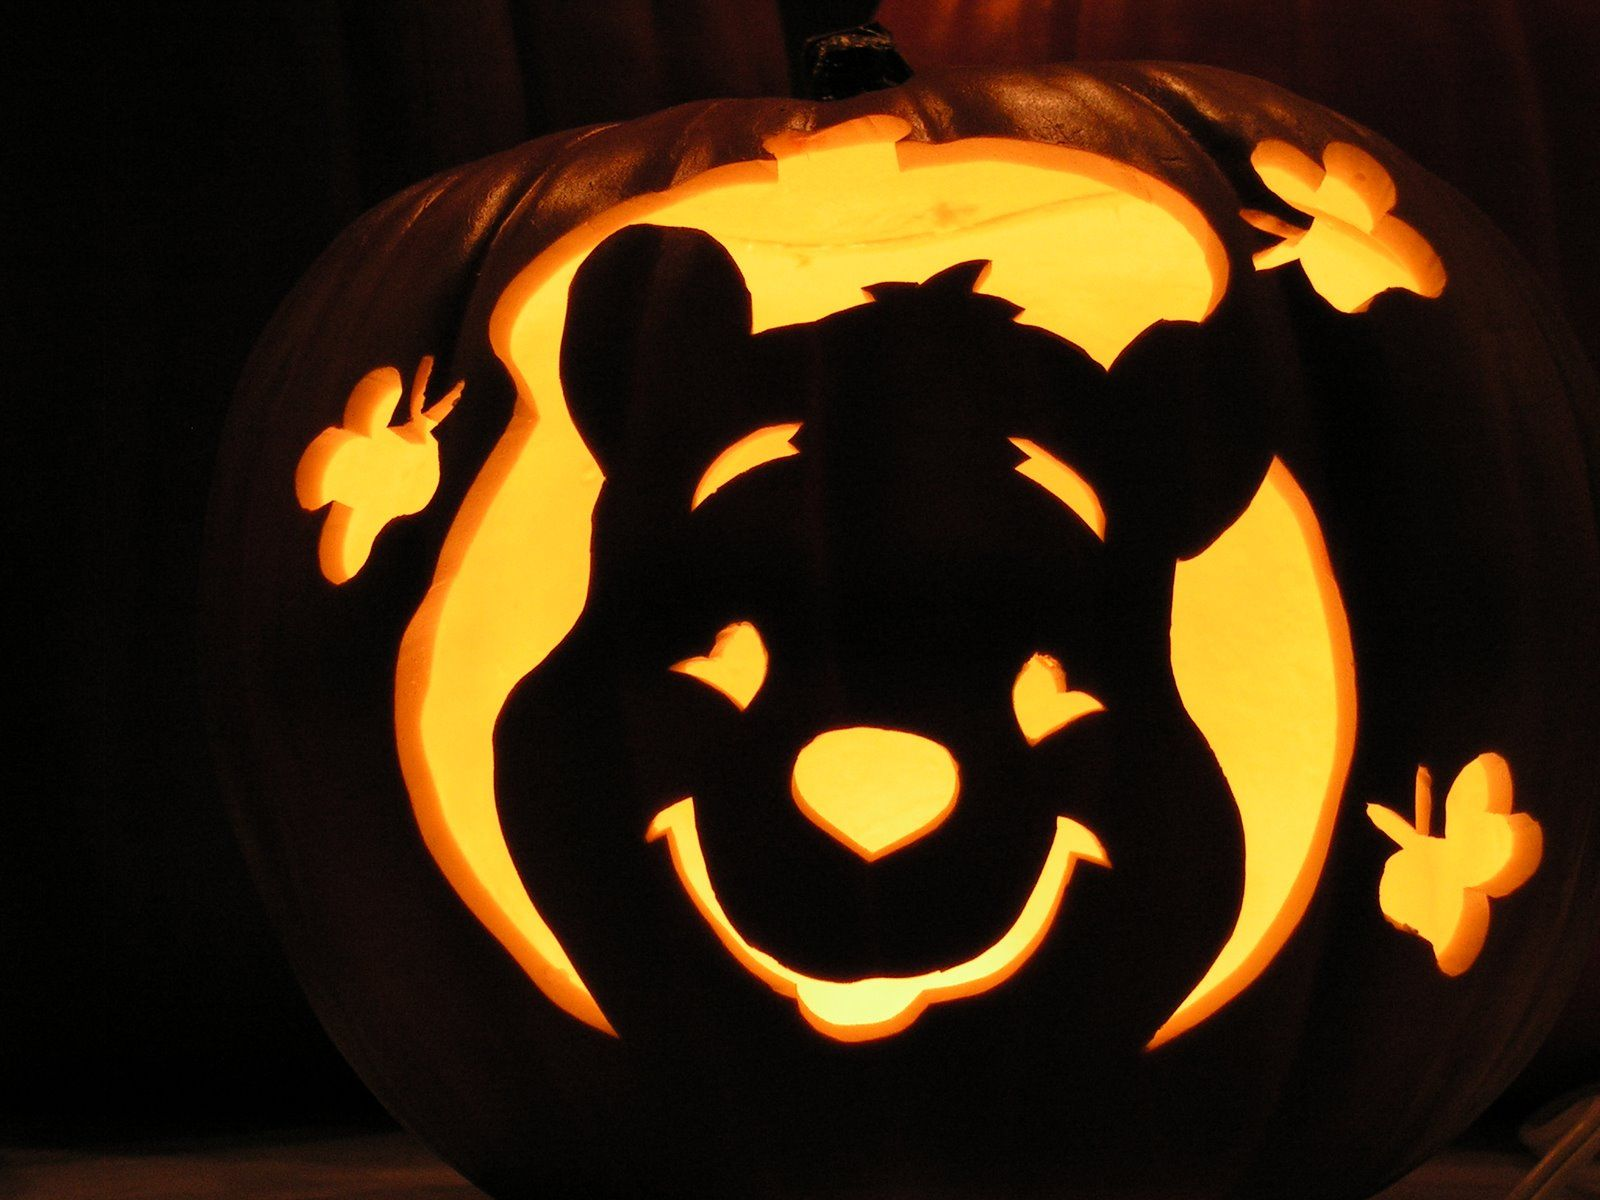 pumpkin carving ideas - Google Search | Holidays & Birthdays ...